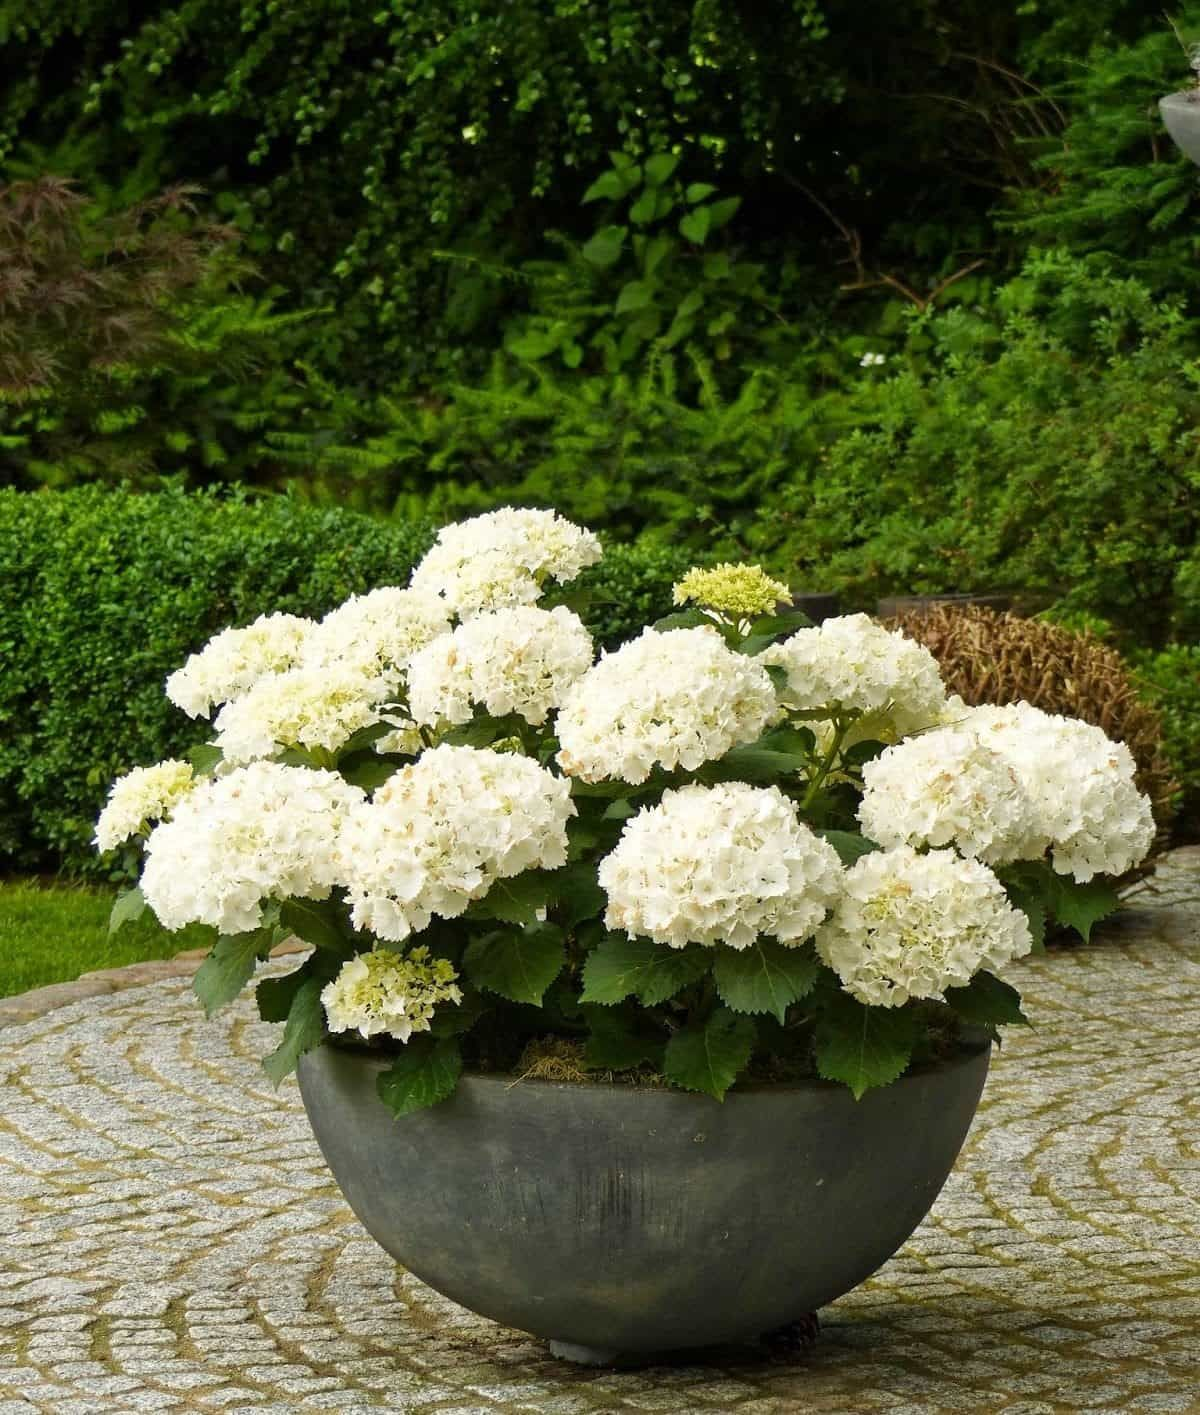 Ortensie Bianche Come Curarle caring tips for potted hydrangea plants nel 2020 (con